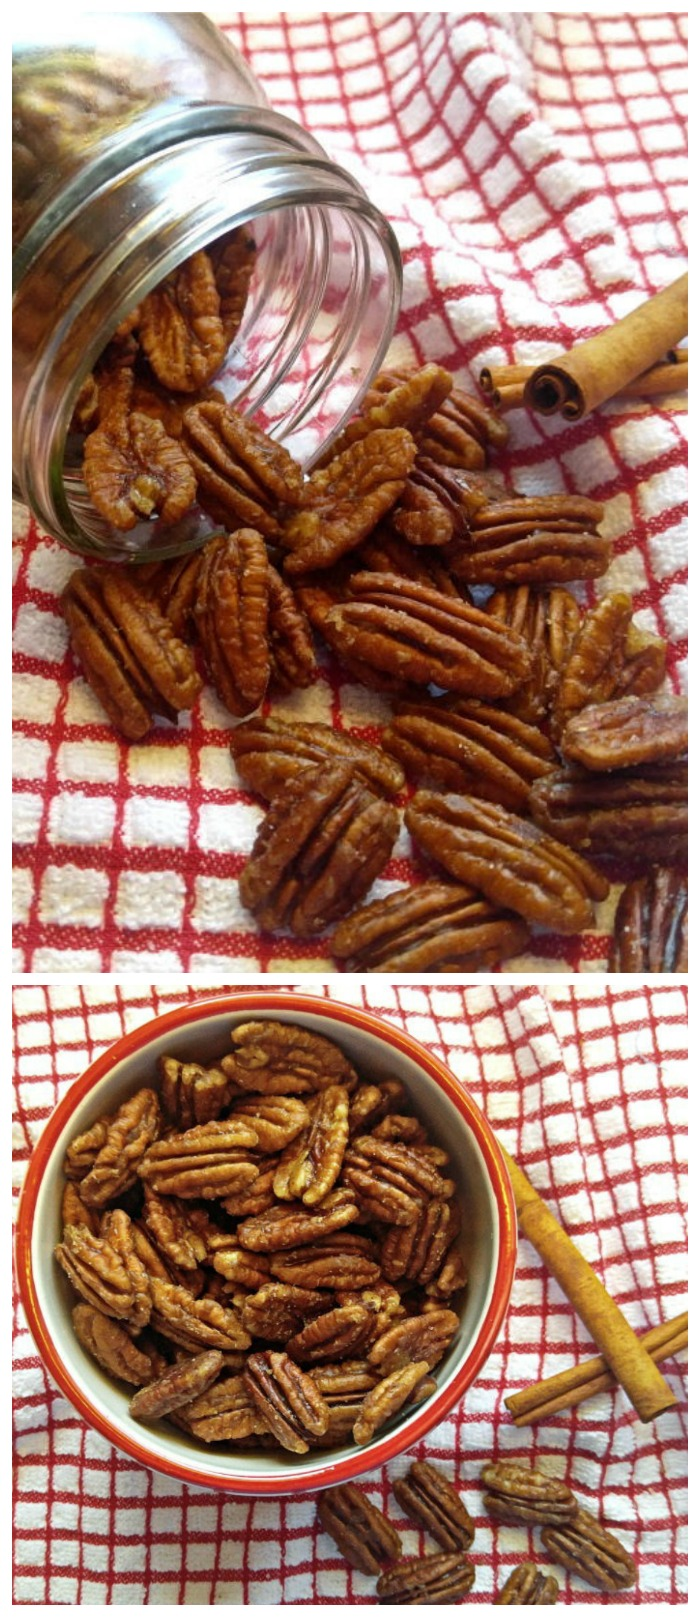 These maple cinnamon toasted pecans are easy to make and taste amazing. They are vegan, gluten free ,Paleo and dairy free, too! #toastedpecans #pecanrecipes